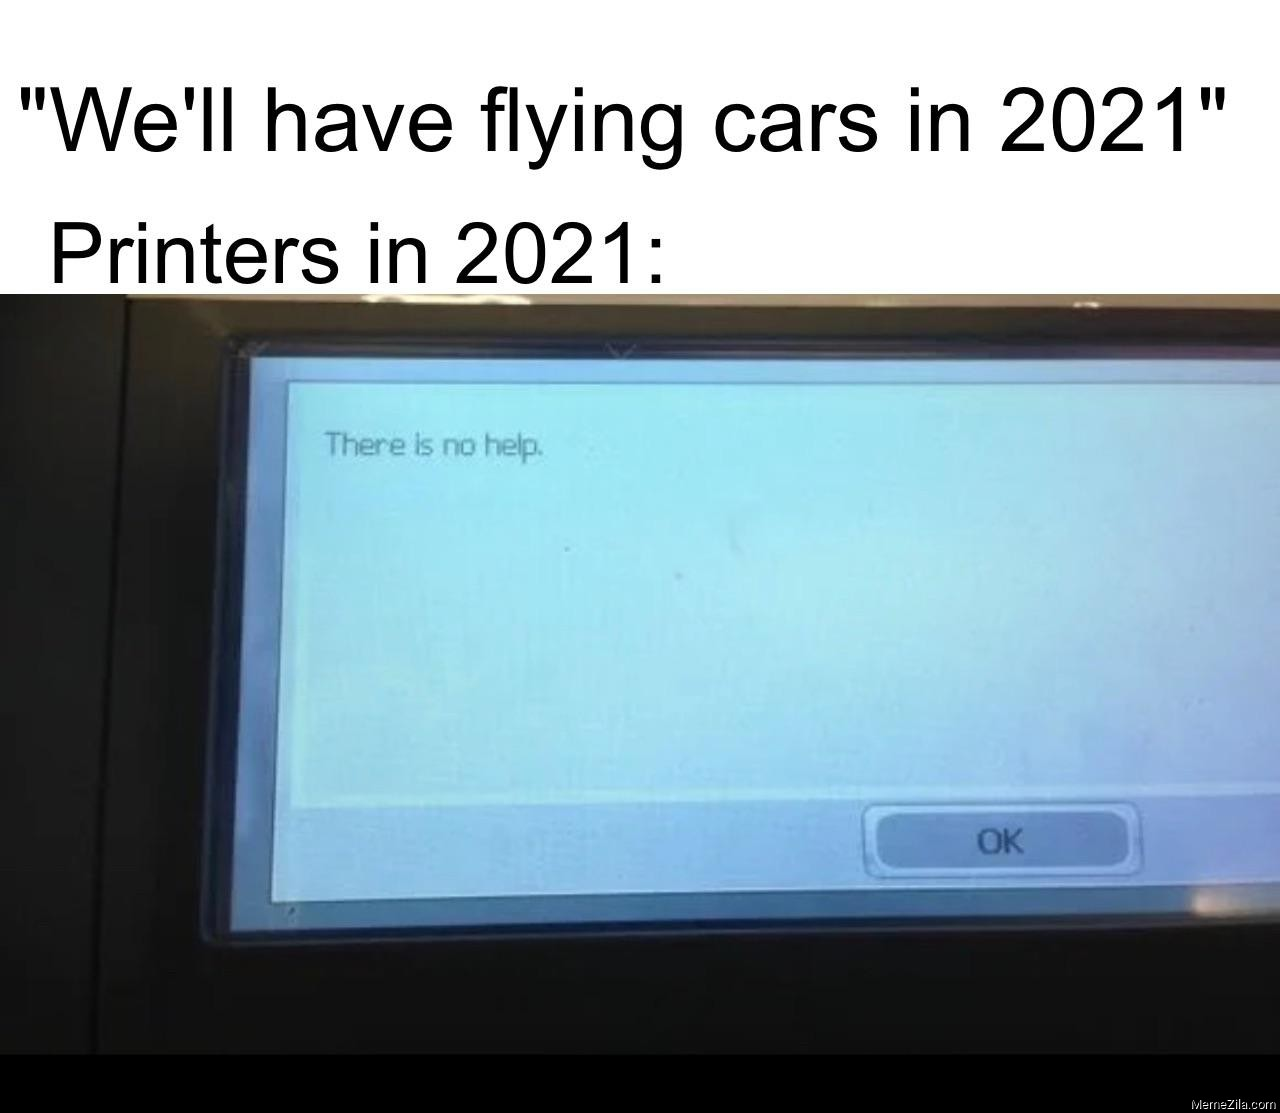 We will have flying cars in 2021 Printers in 2021 meme